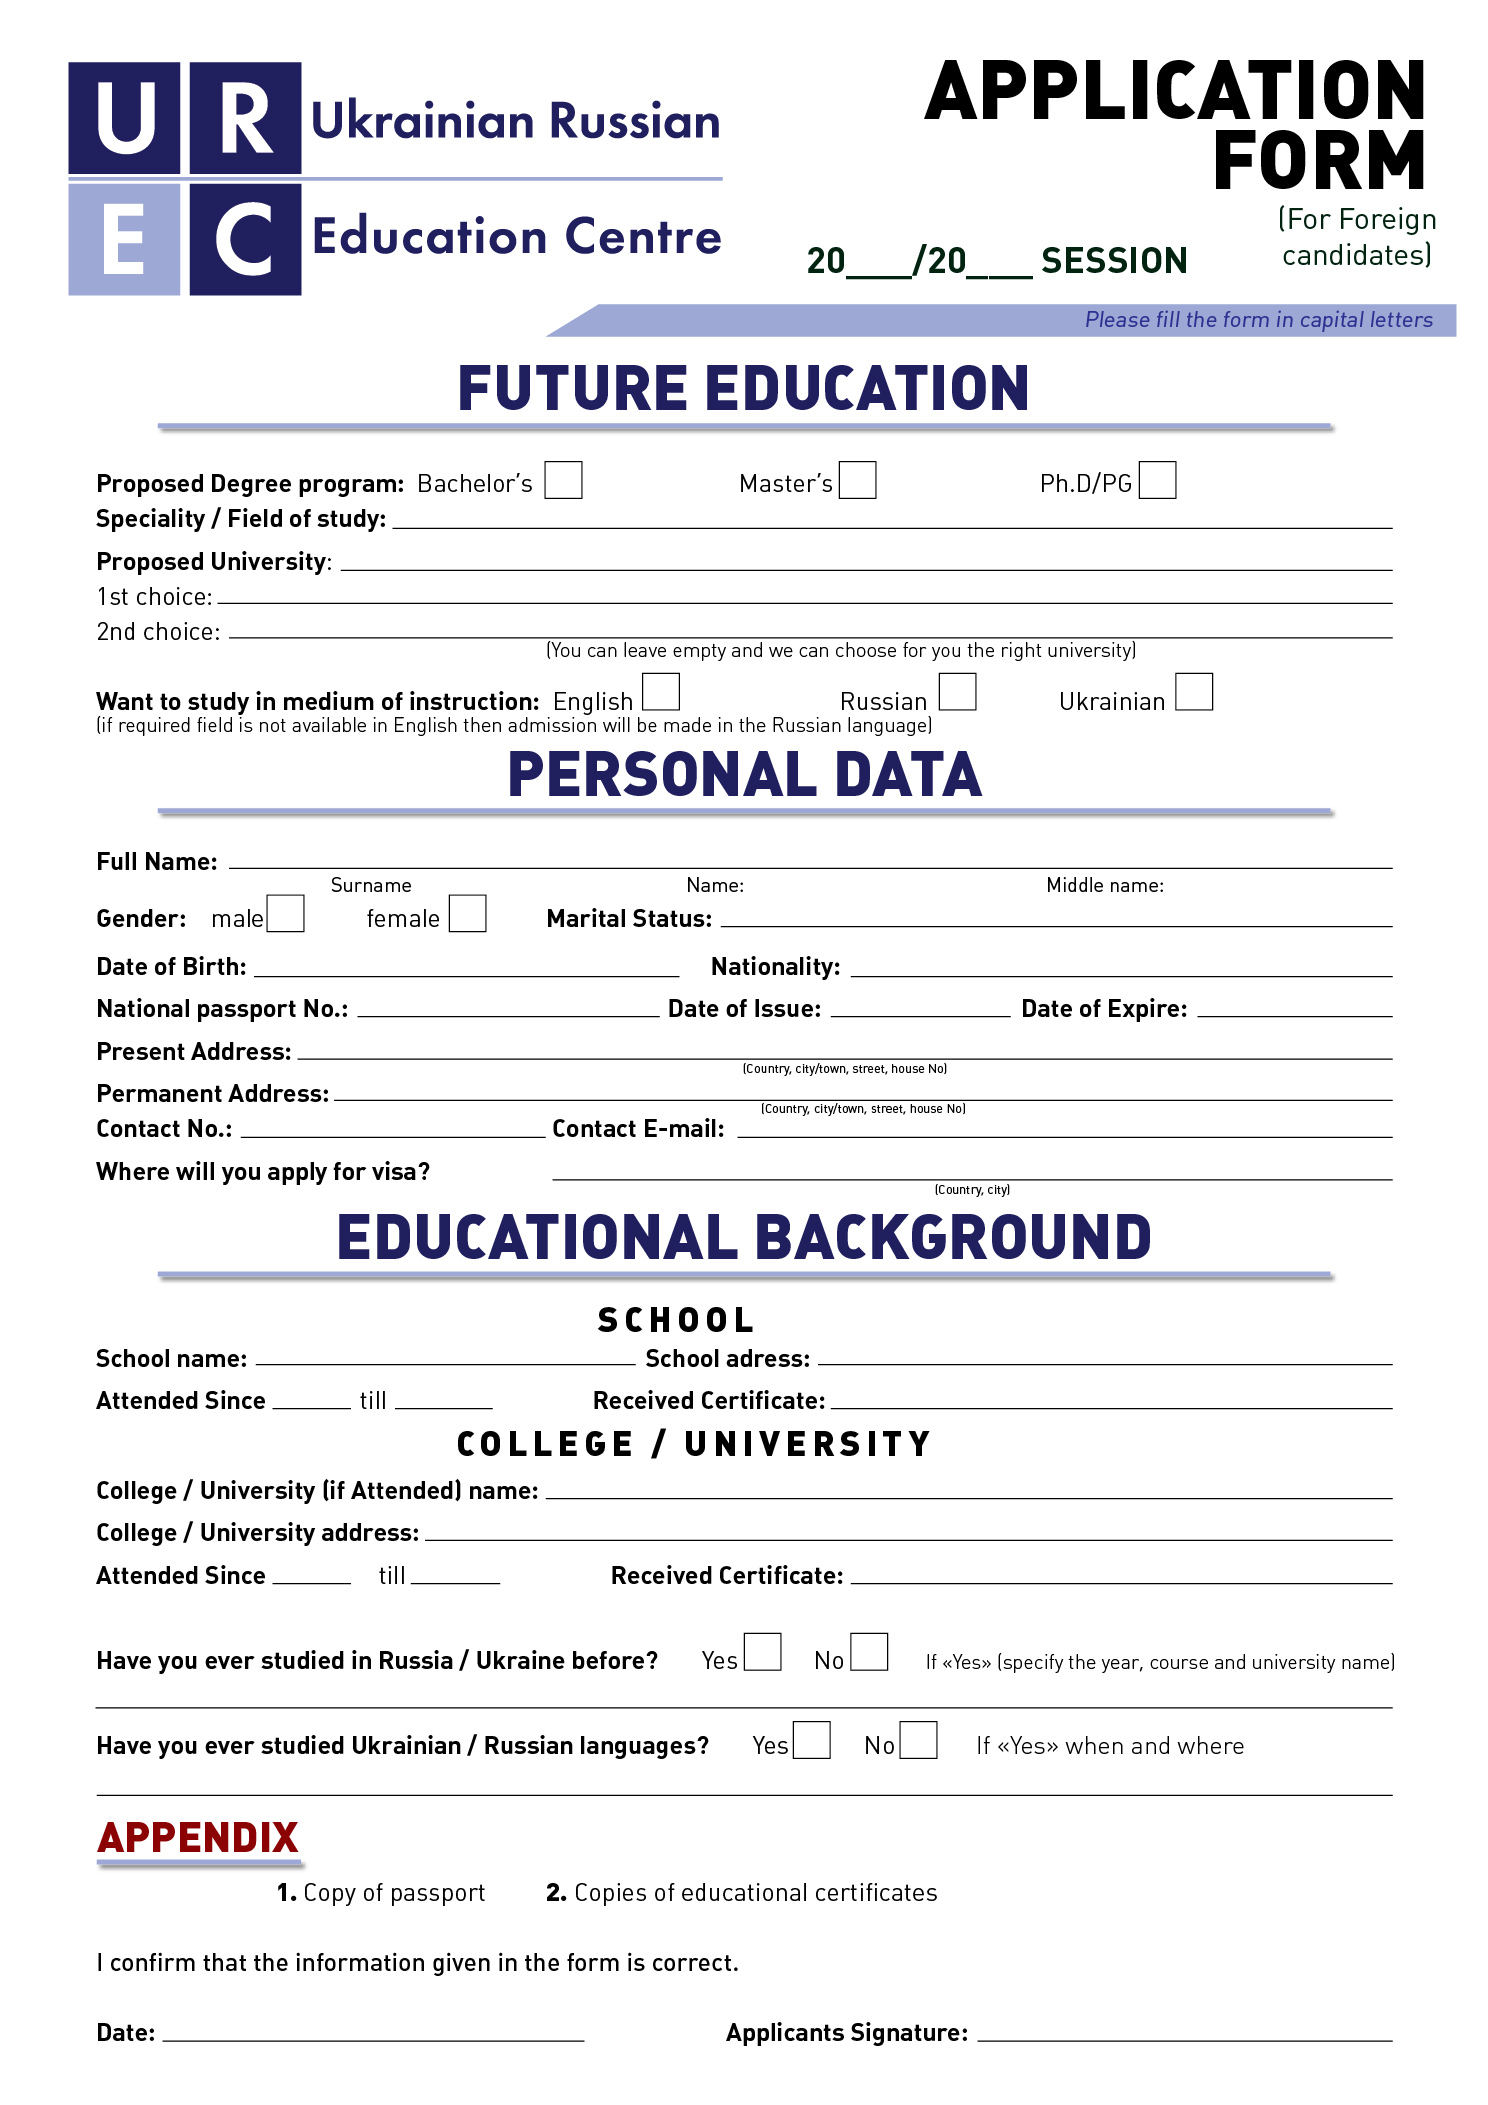 Application Form Doc on doctor forms, bill forms, dog forms, google forms, html forms,